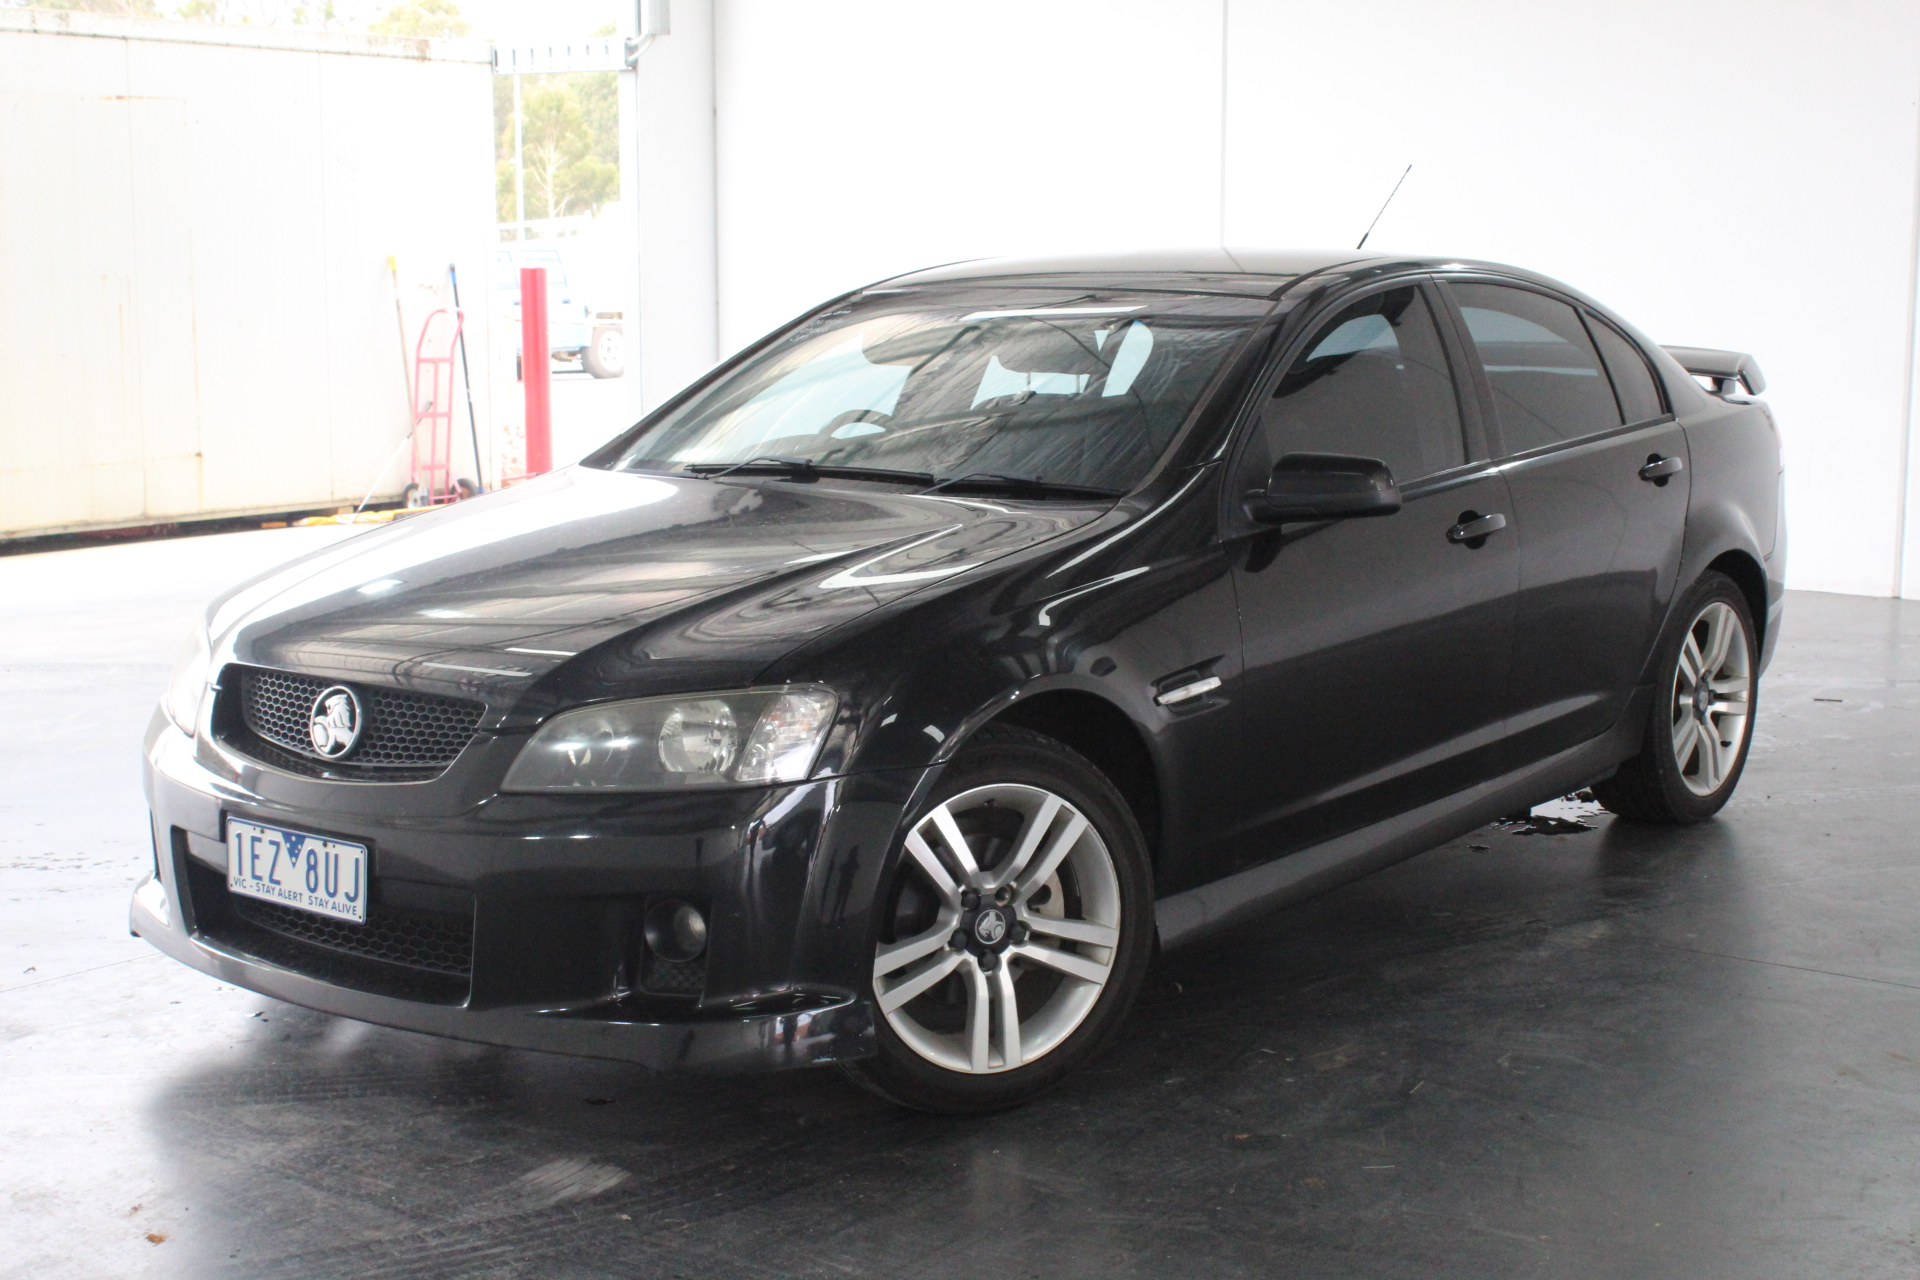 2009 Holden Commodore SV6 VE Automatic Sedan